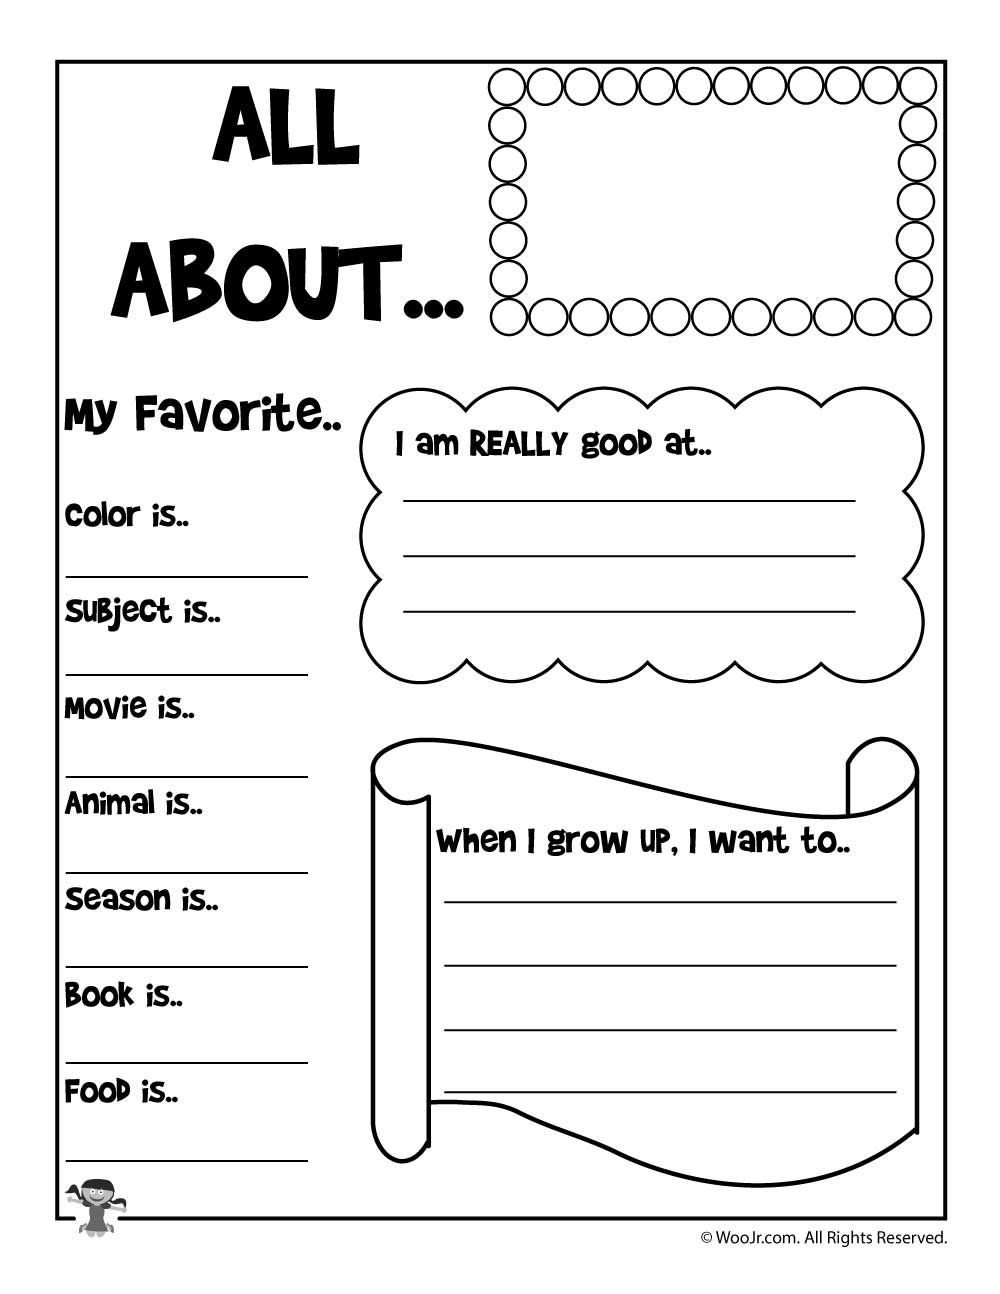 Making Inferences Worksheet 4th Grade Printable About Worksheets with All 4th Grade Work